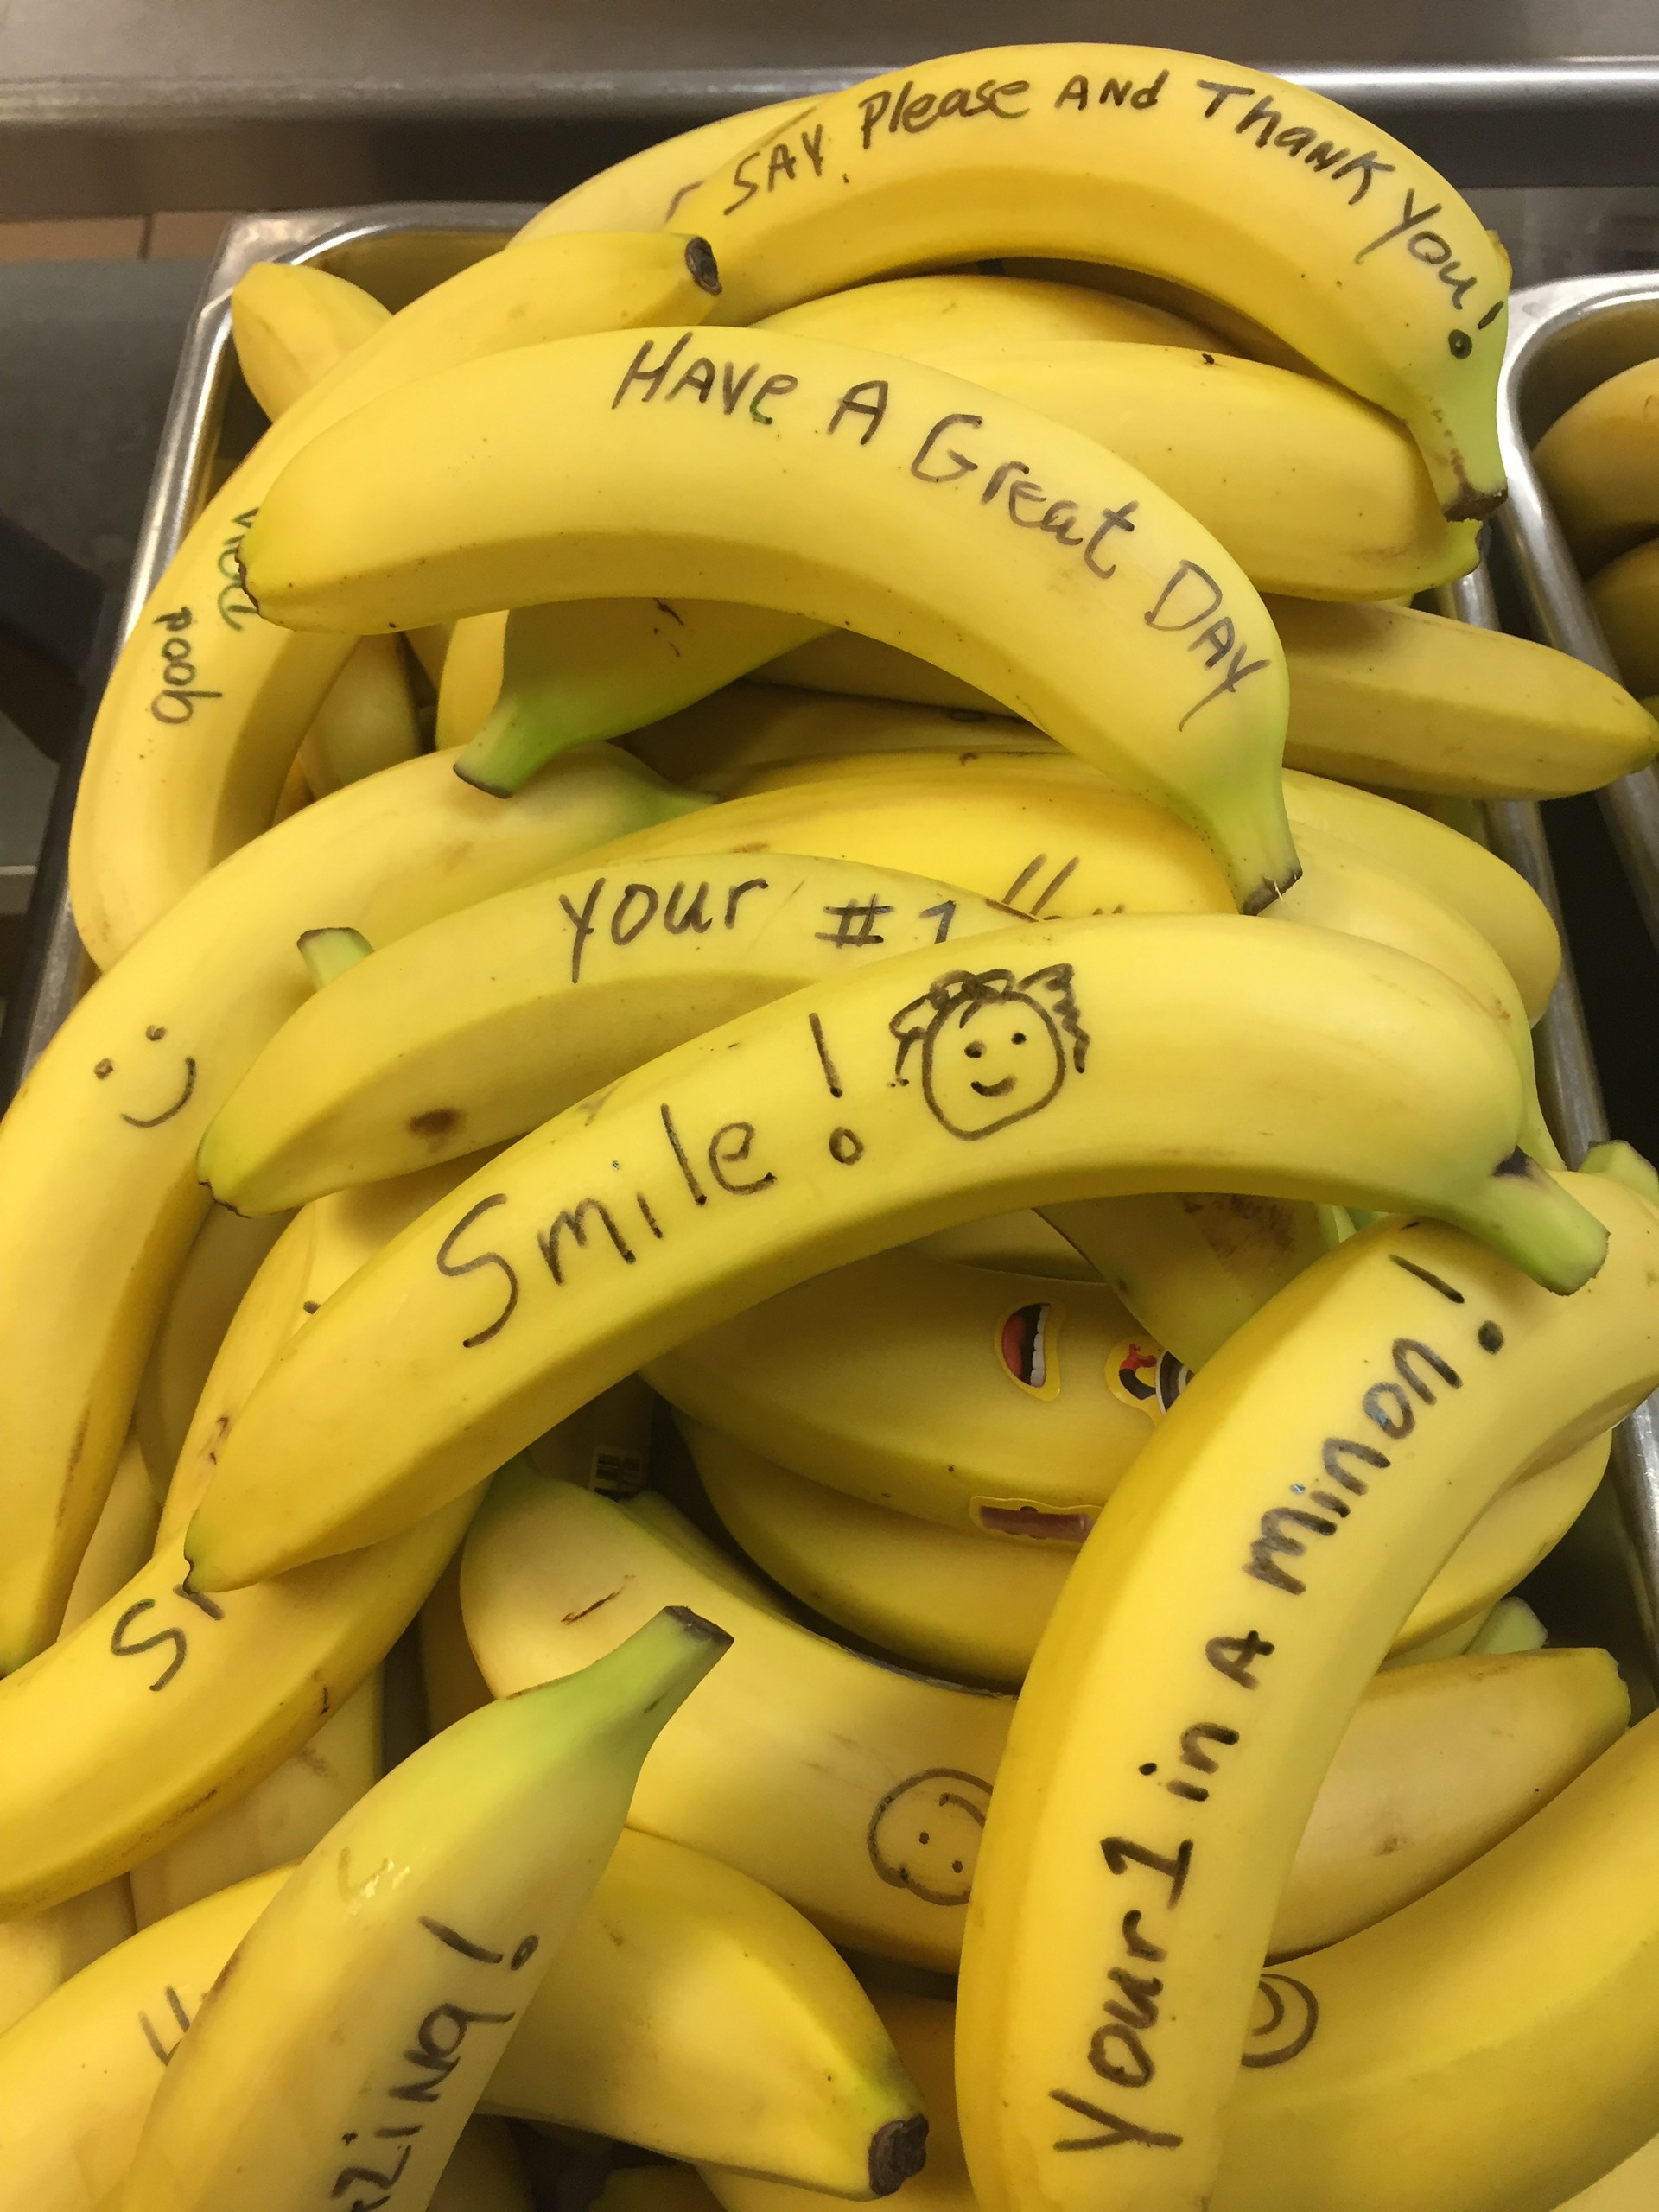 Bananas with motivational quotes written on them such as Smile! and your #1.